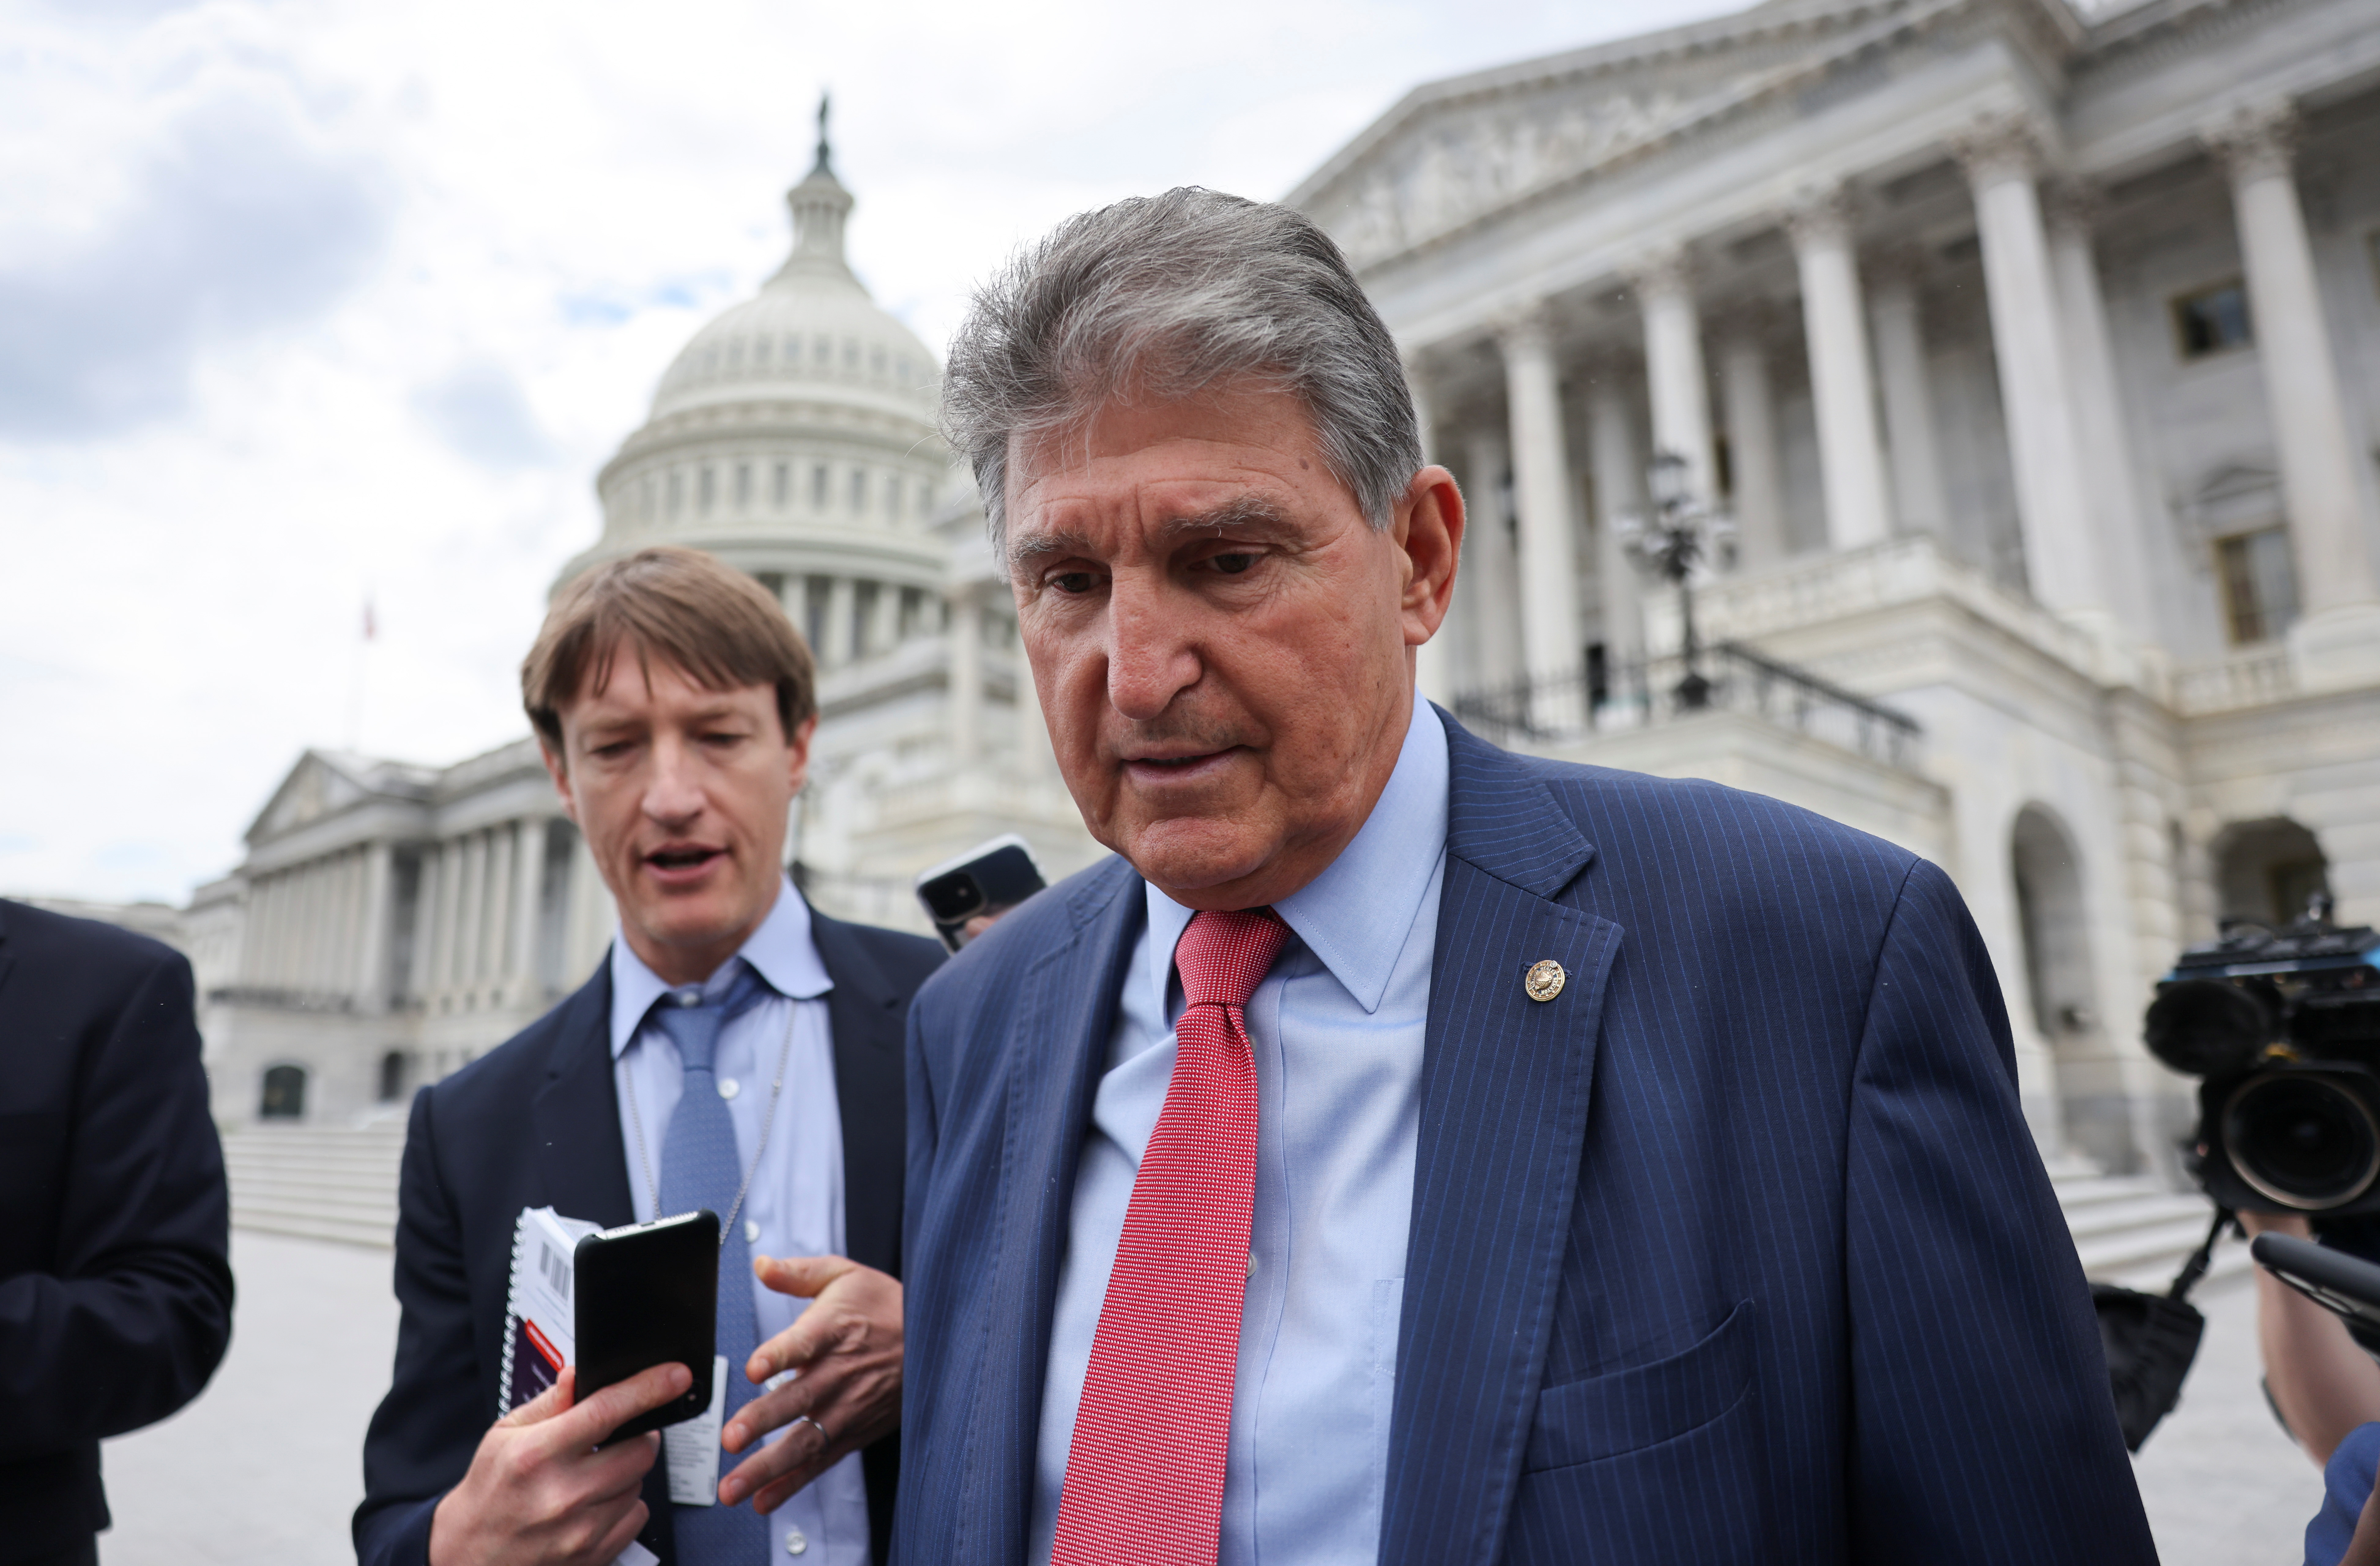 U.S. Senator Joe Manchin (D-WV) talks to reporters as he departs the U.S. Capitol after a vote in the Senate on Capitol Hill in Washington, U.S., June 10, 2021. REUTERS/Evelyn Hockstein